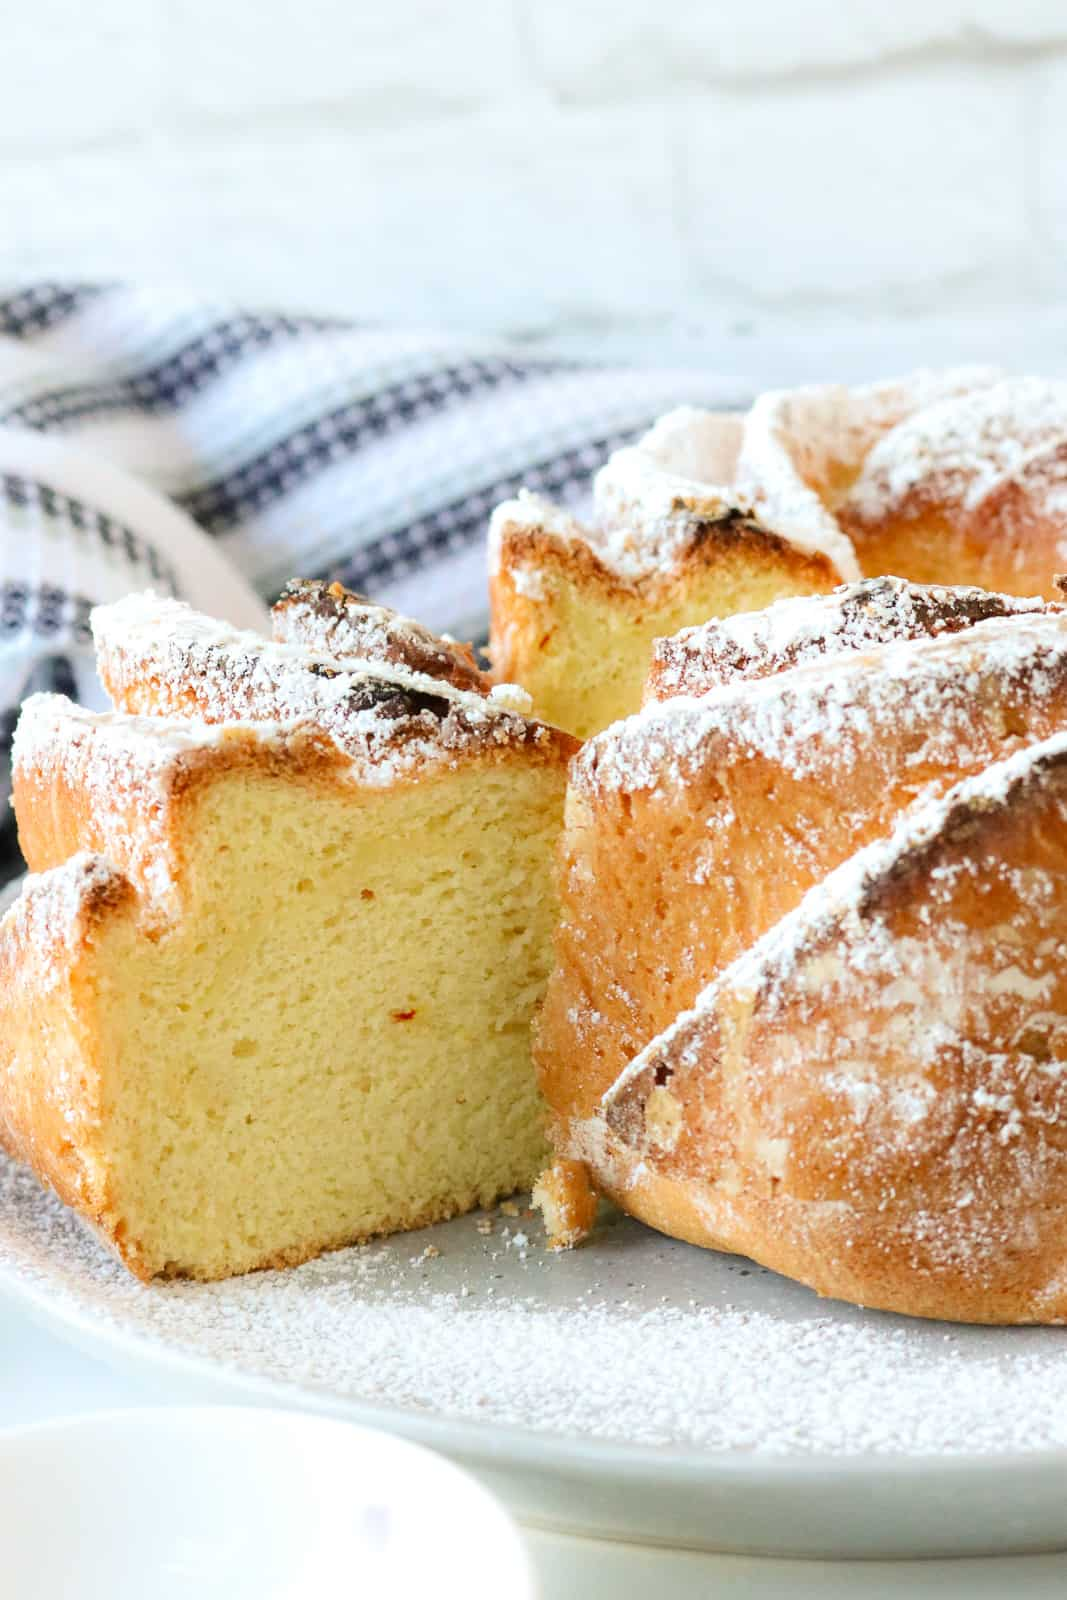 Saffron cake with slice cut out on a plate topped with powdered sugar